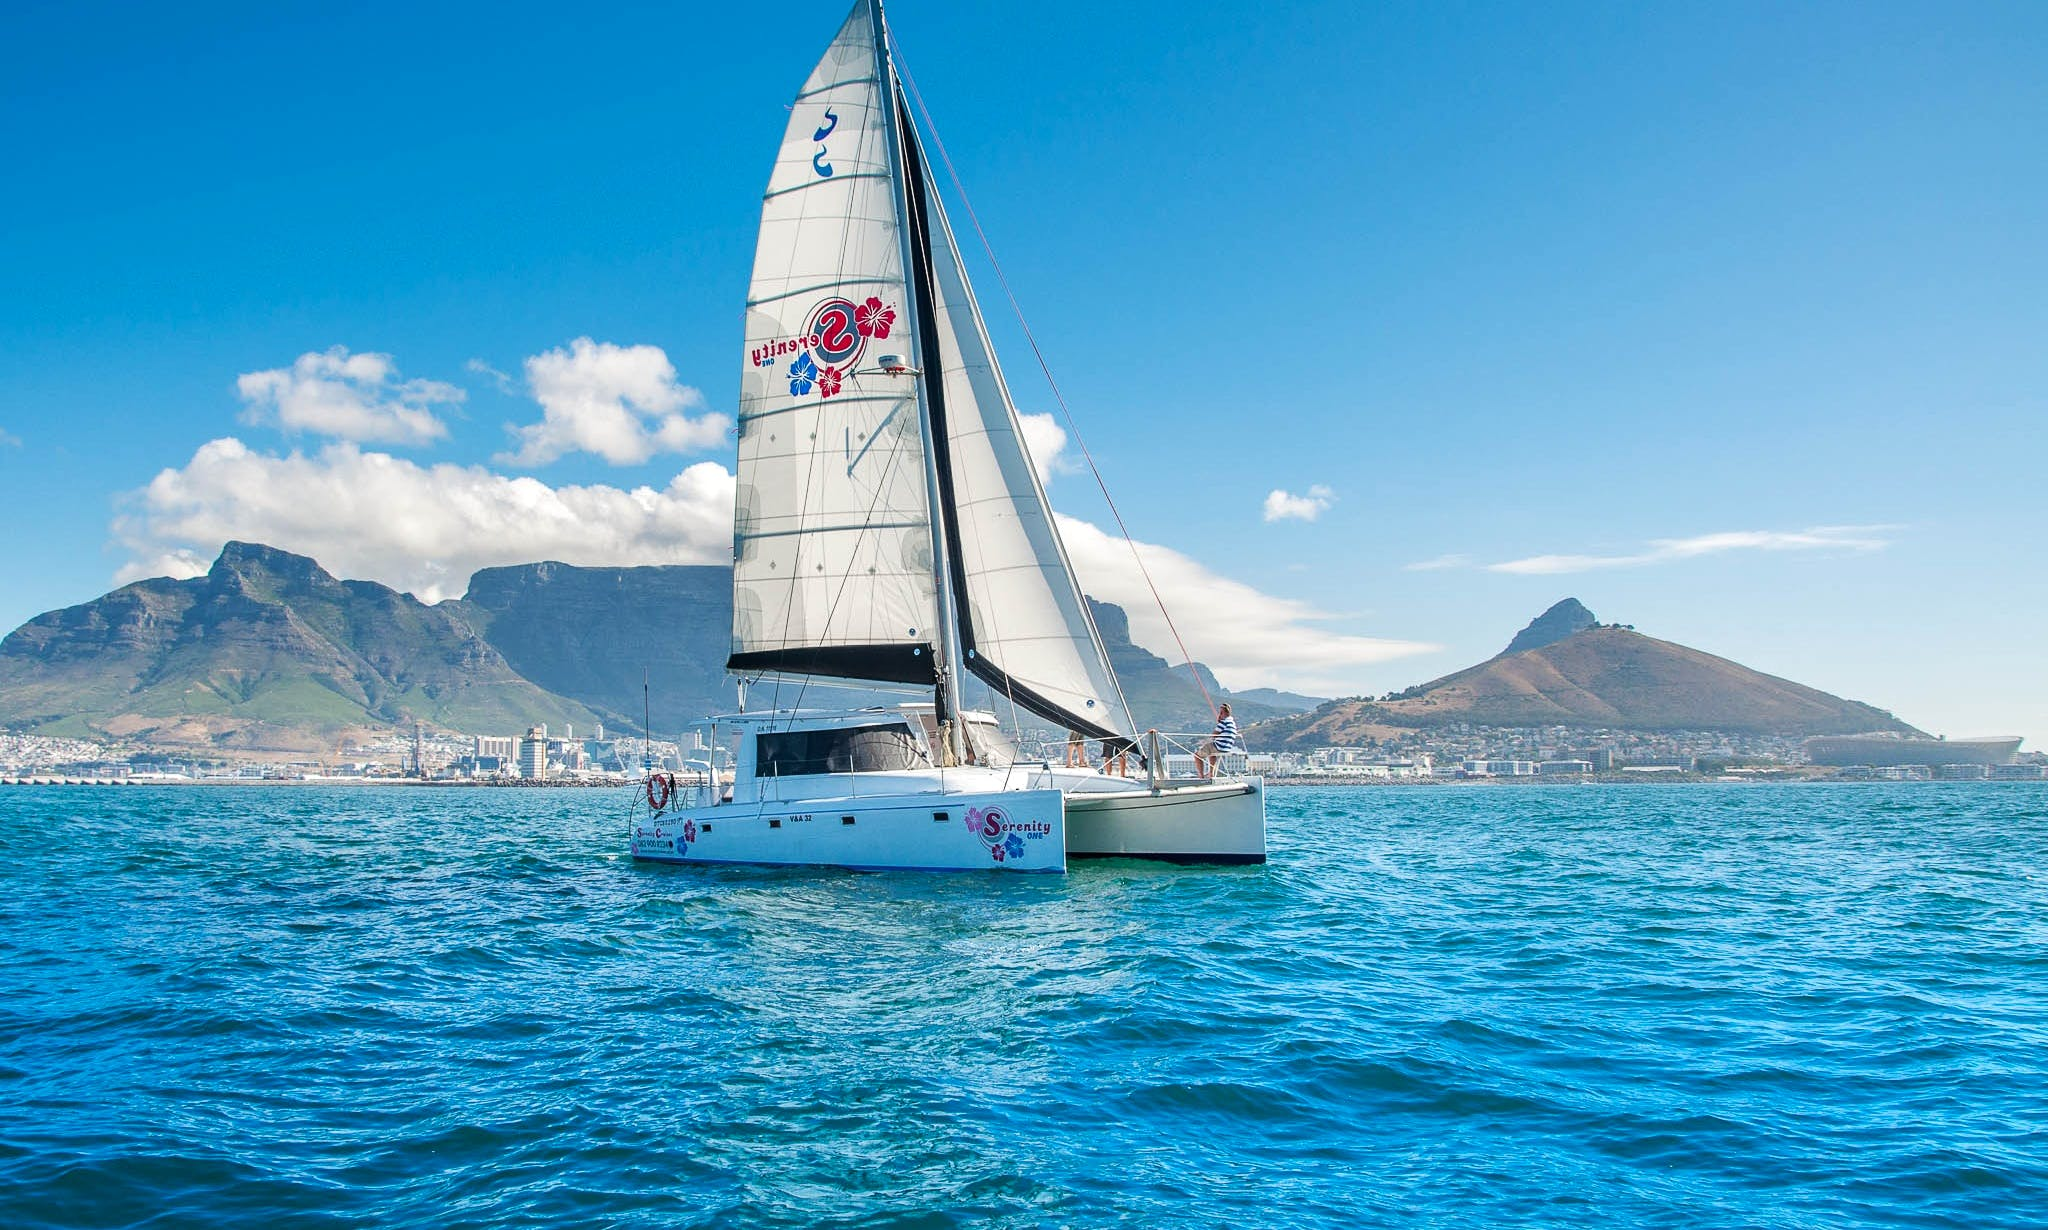 Serenity One Luxury Sailing Catamaran for Private Charter Hire in Cape Town